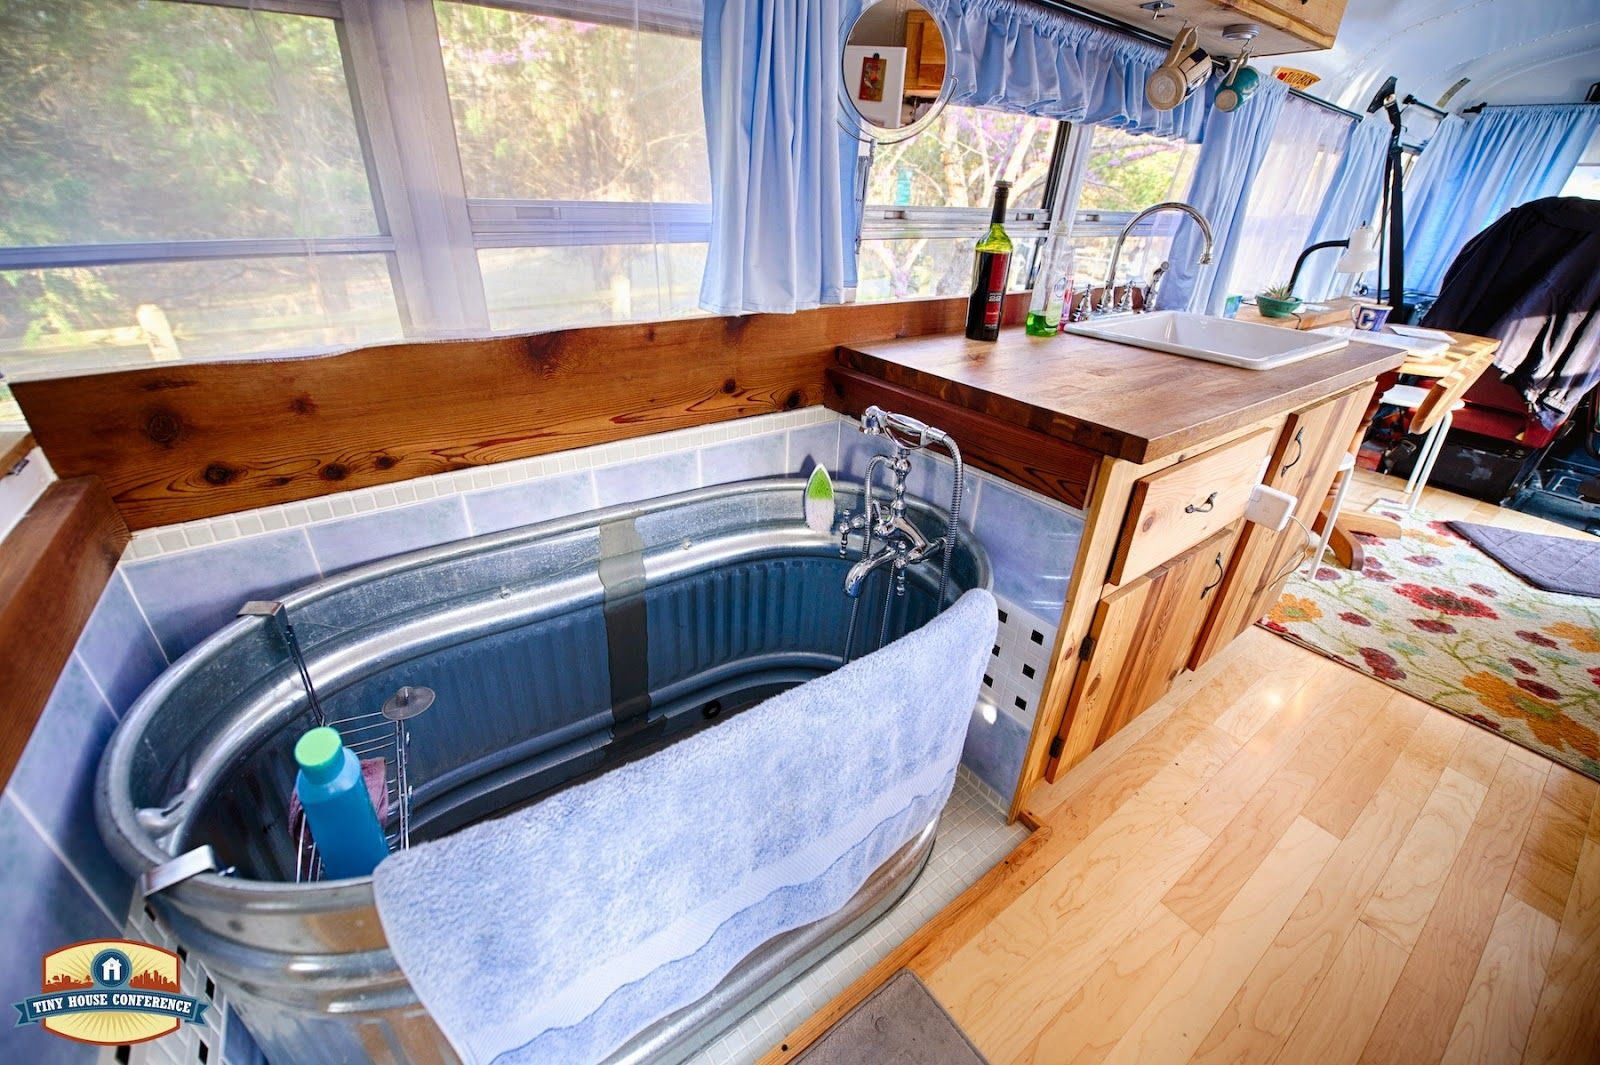 Just Right Bus: Living with a Water Trough Bathtub | School Bus ...